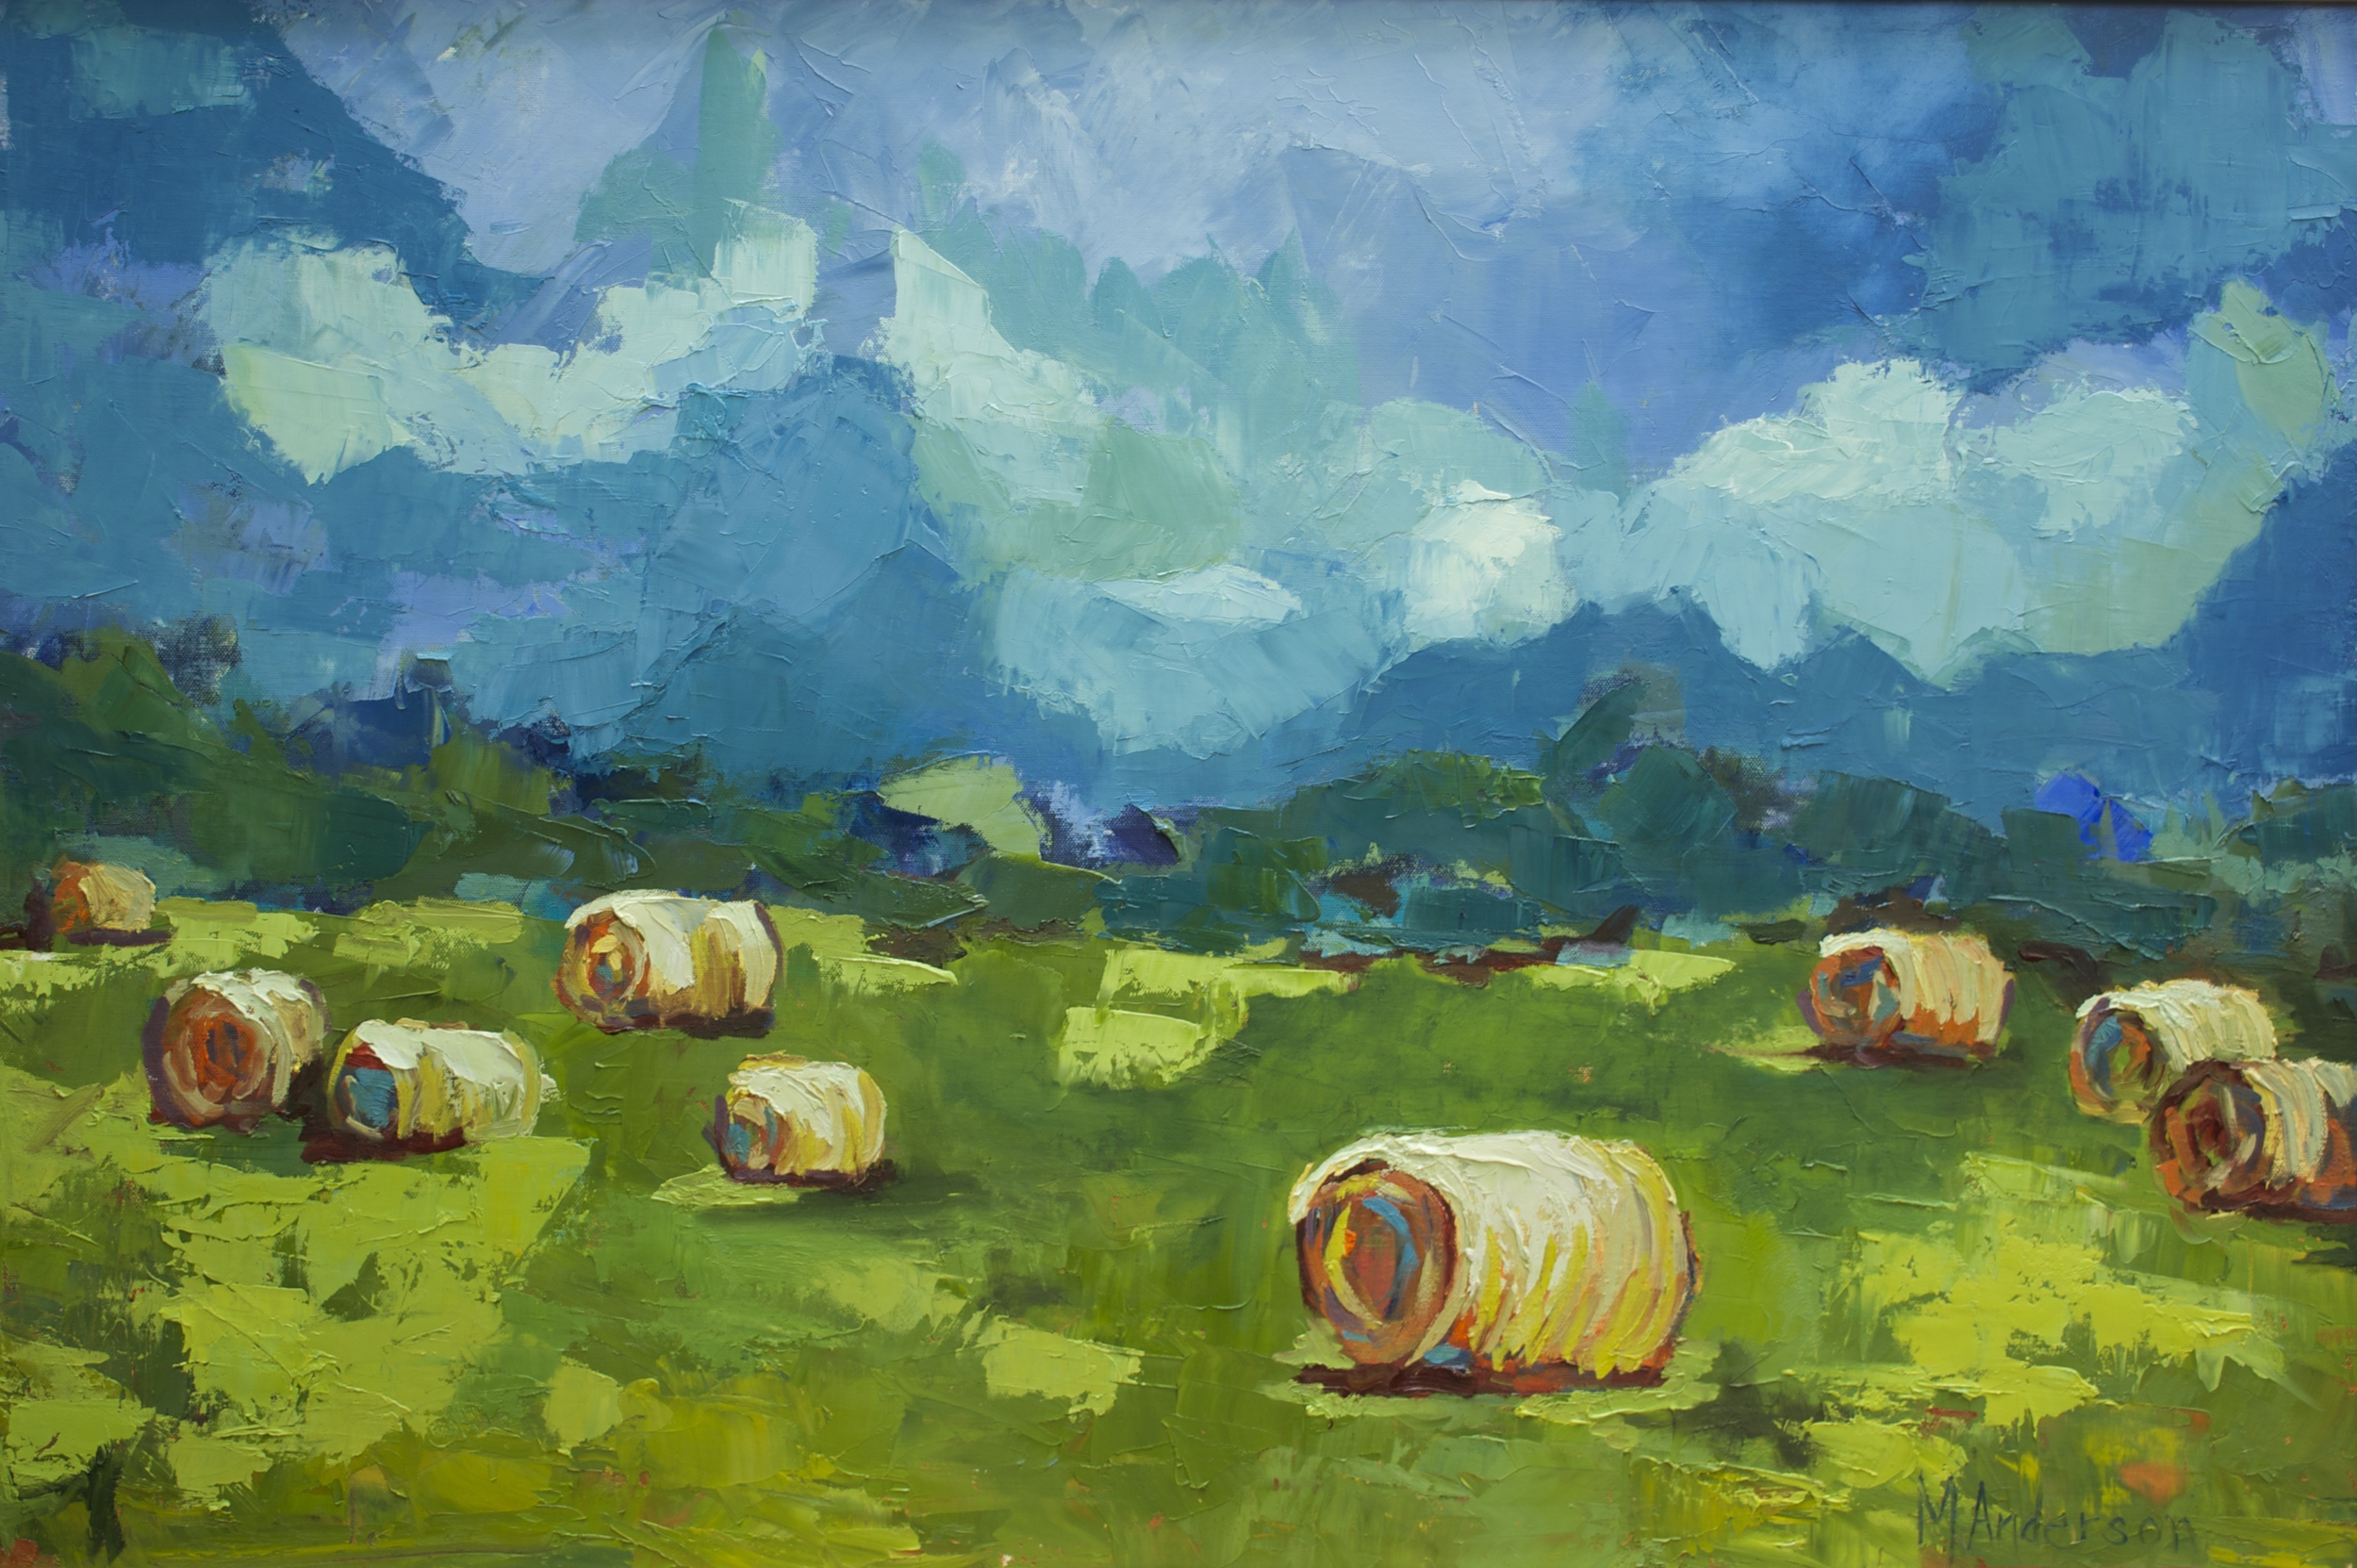 Hay Bales (24x36 Canvas) - Available